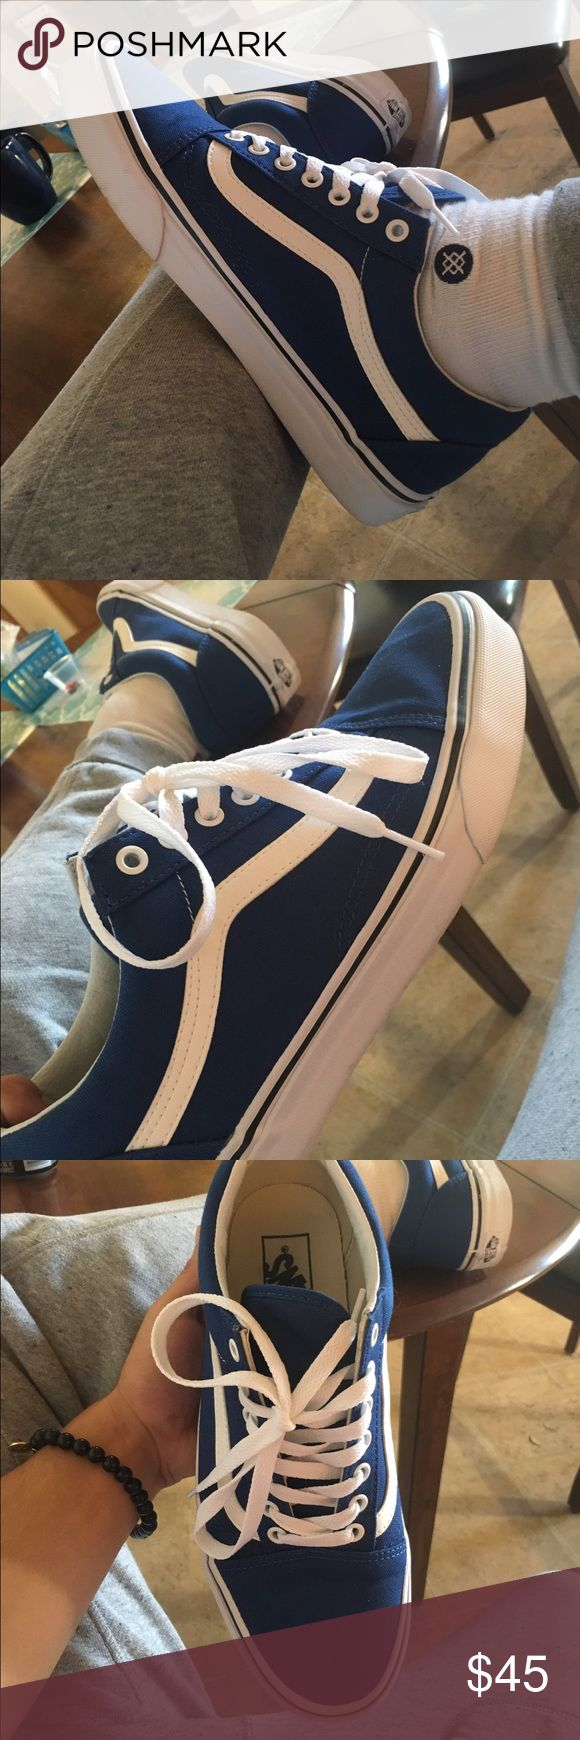 Old School Vans Navy 8.5 Worn once size 8.5 down to trade or sell perfect condition. Vans Shoes Athletic Shoes